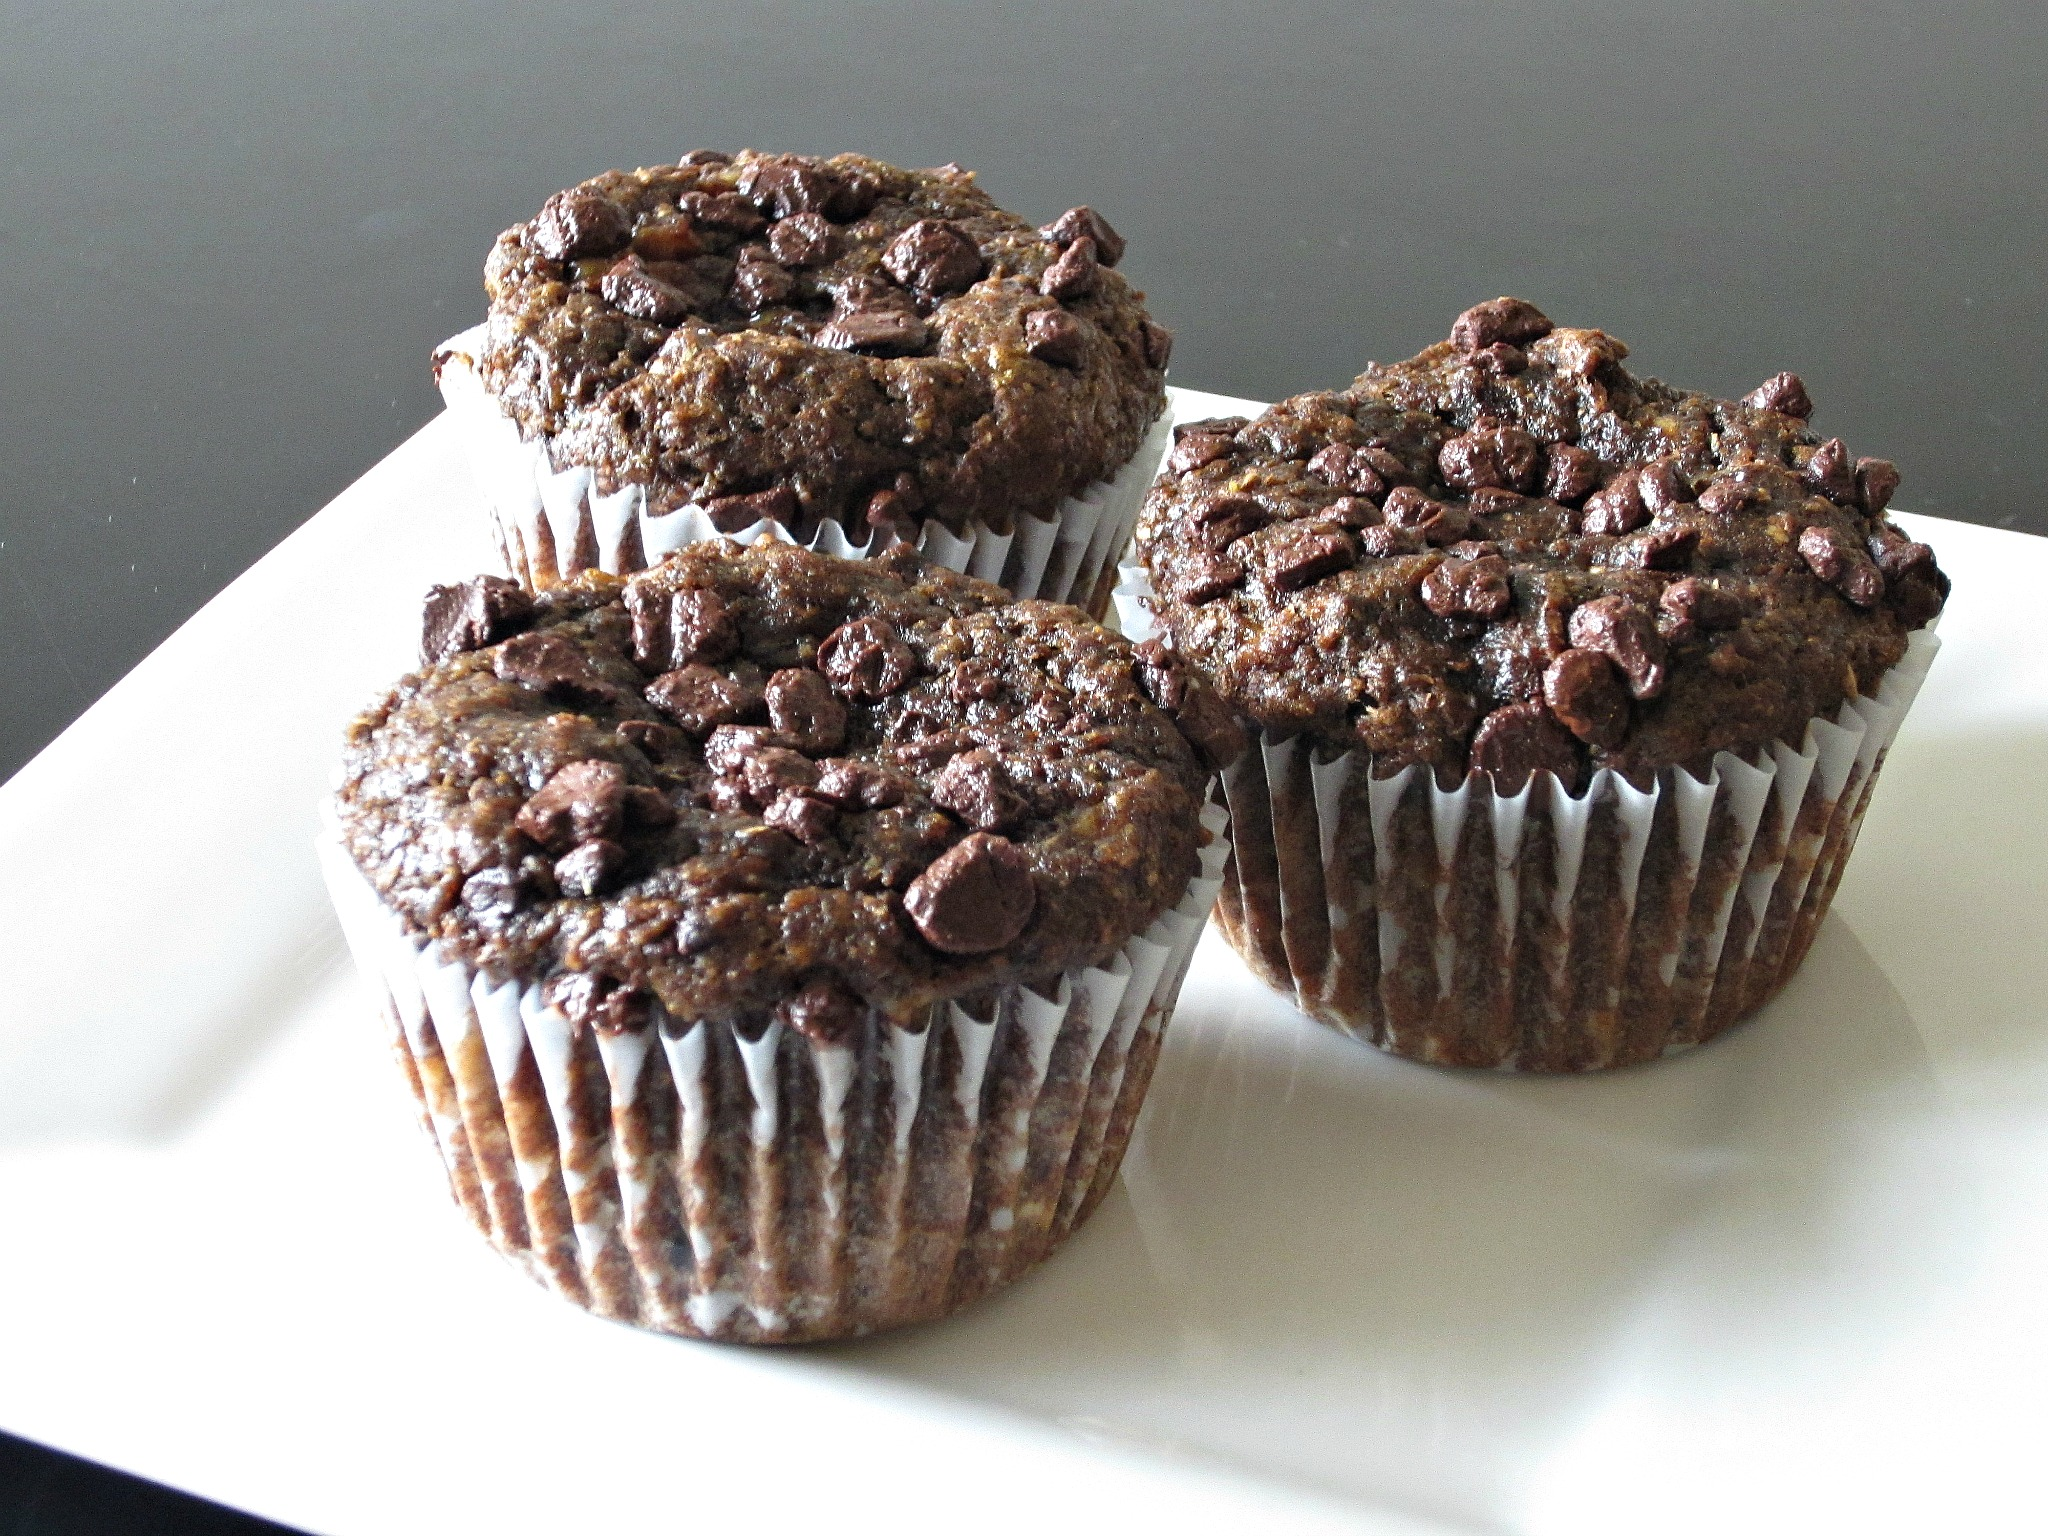 Fudgy Chocolate Banana Flax Muffins - Love to be in the Kitchen